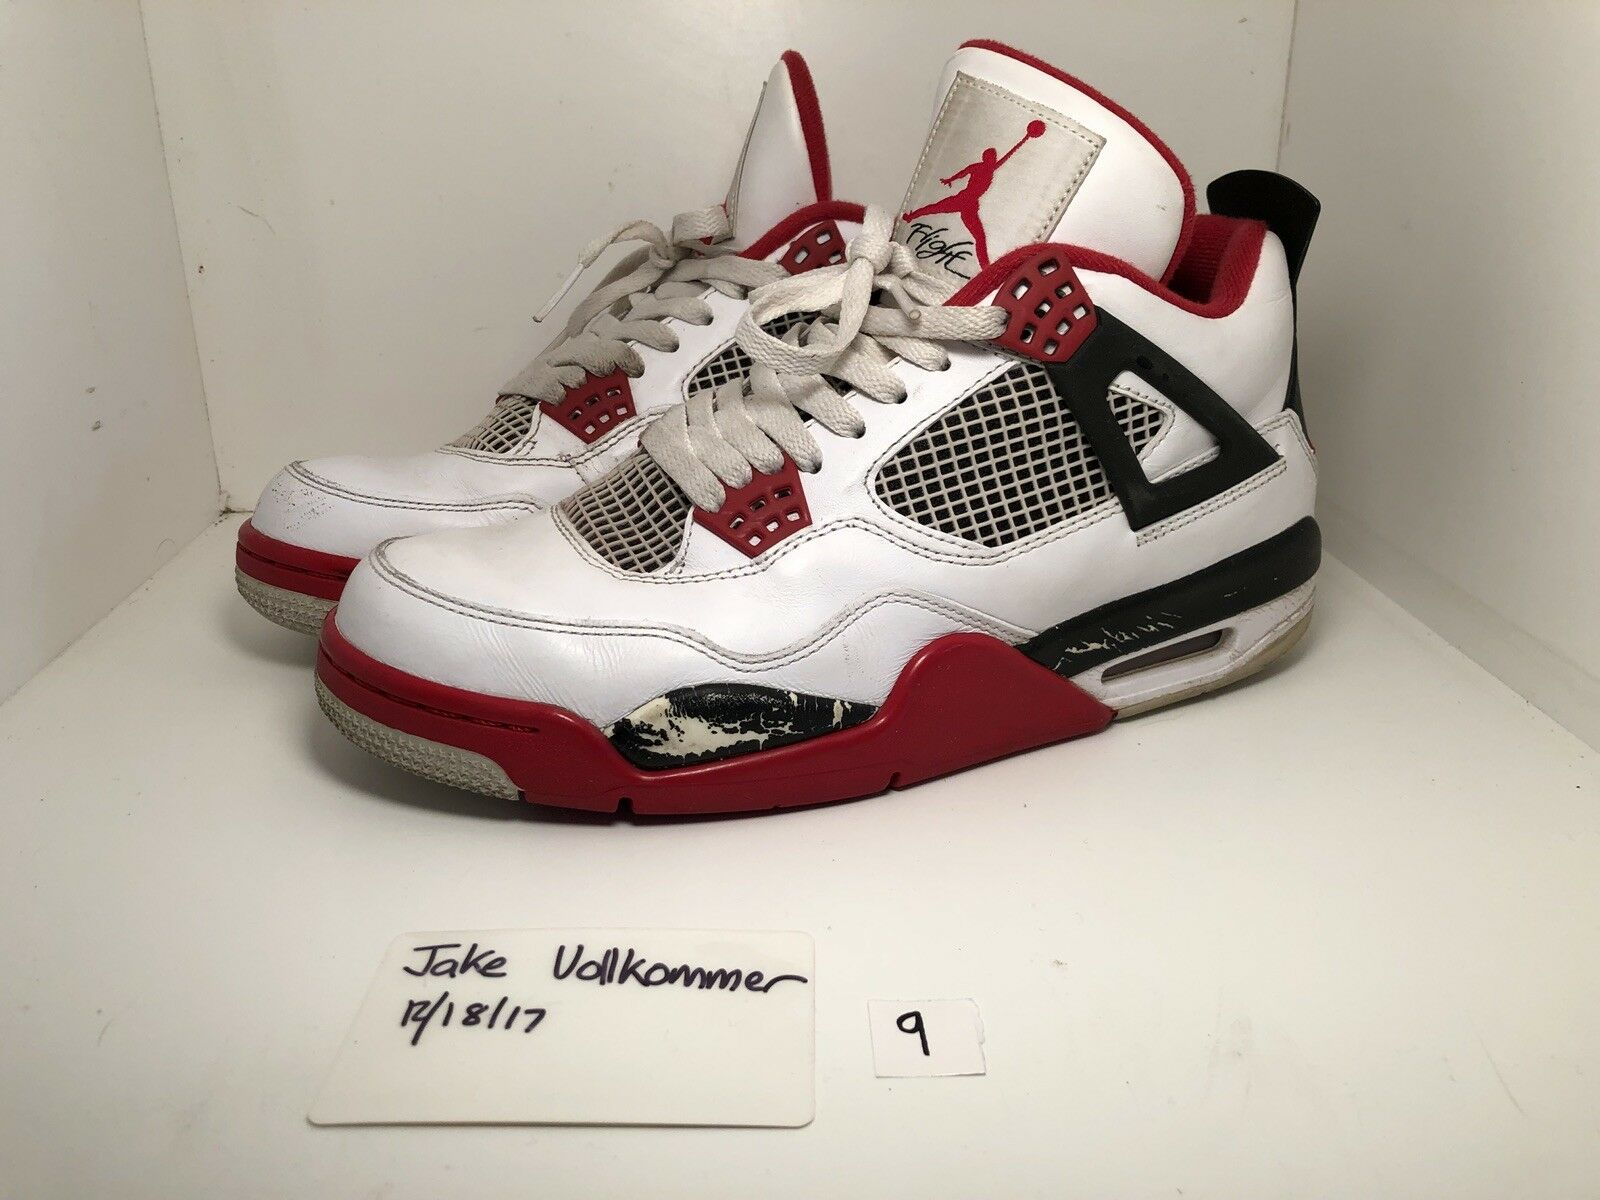 Nike Air Jordan Retro 4 IV  Fire Red   2012 9